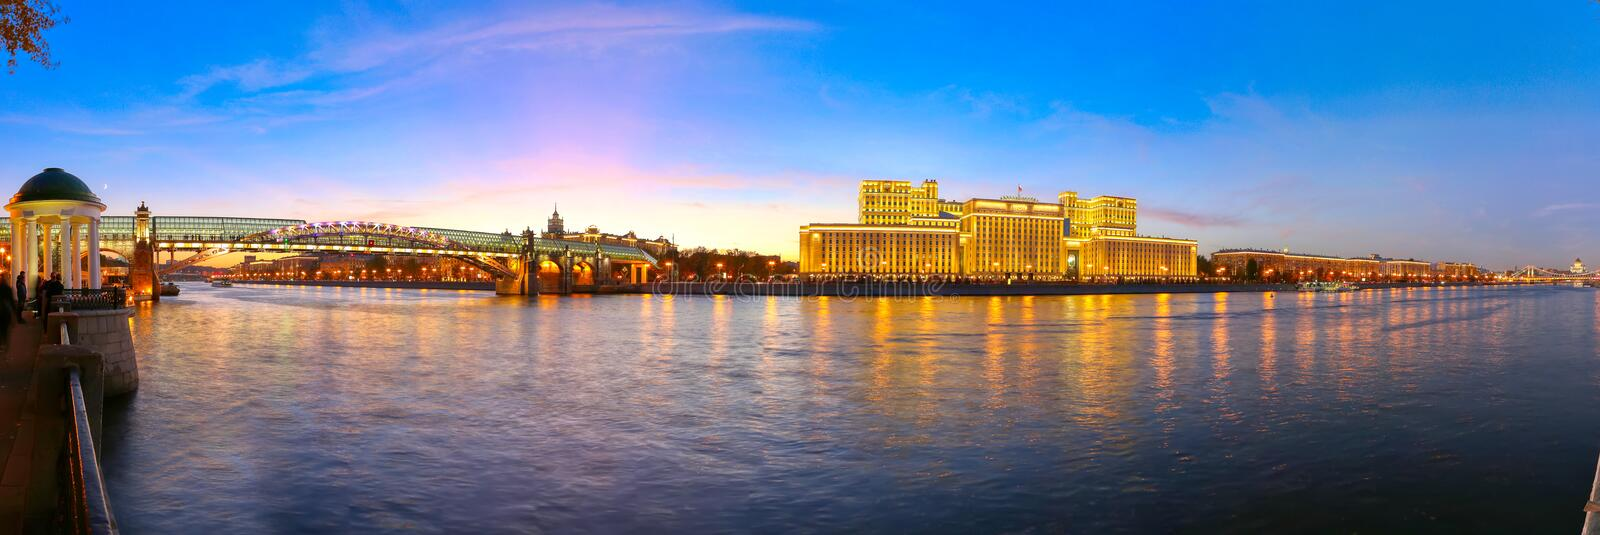 Main Building of the Ministry of Defence of the Russian Federation Minoboron and Moskva River panorama. Moscow, Russia. Main Building of the Ministry of Defence royalty free stock image